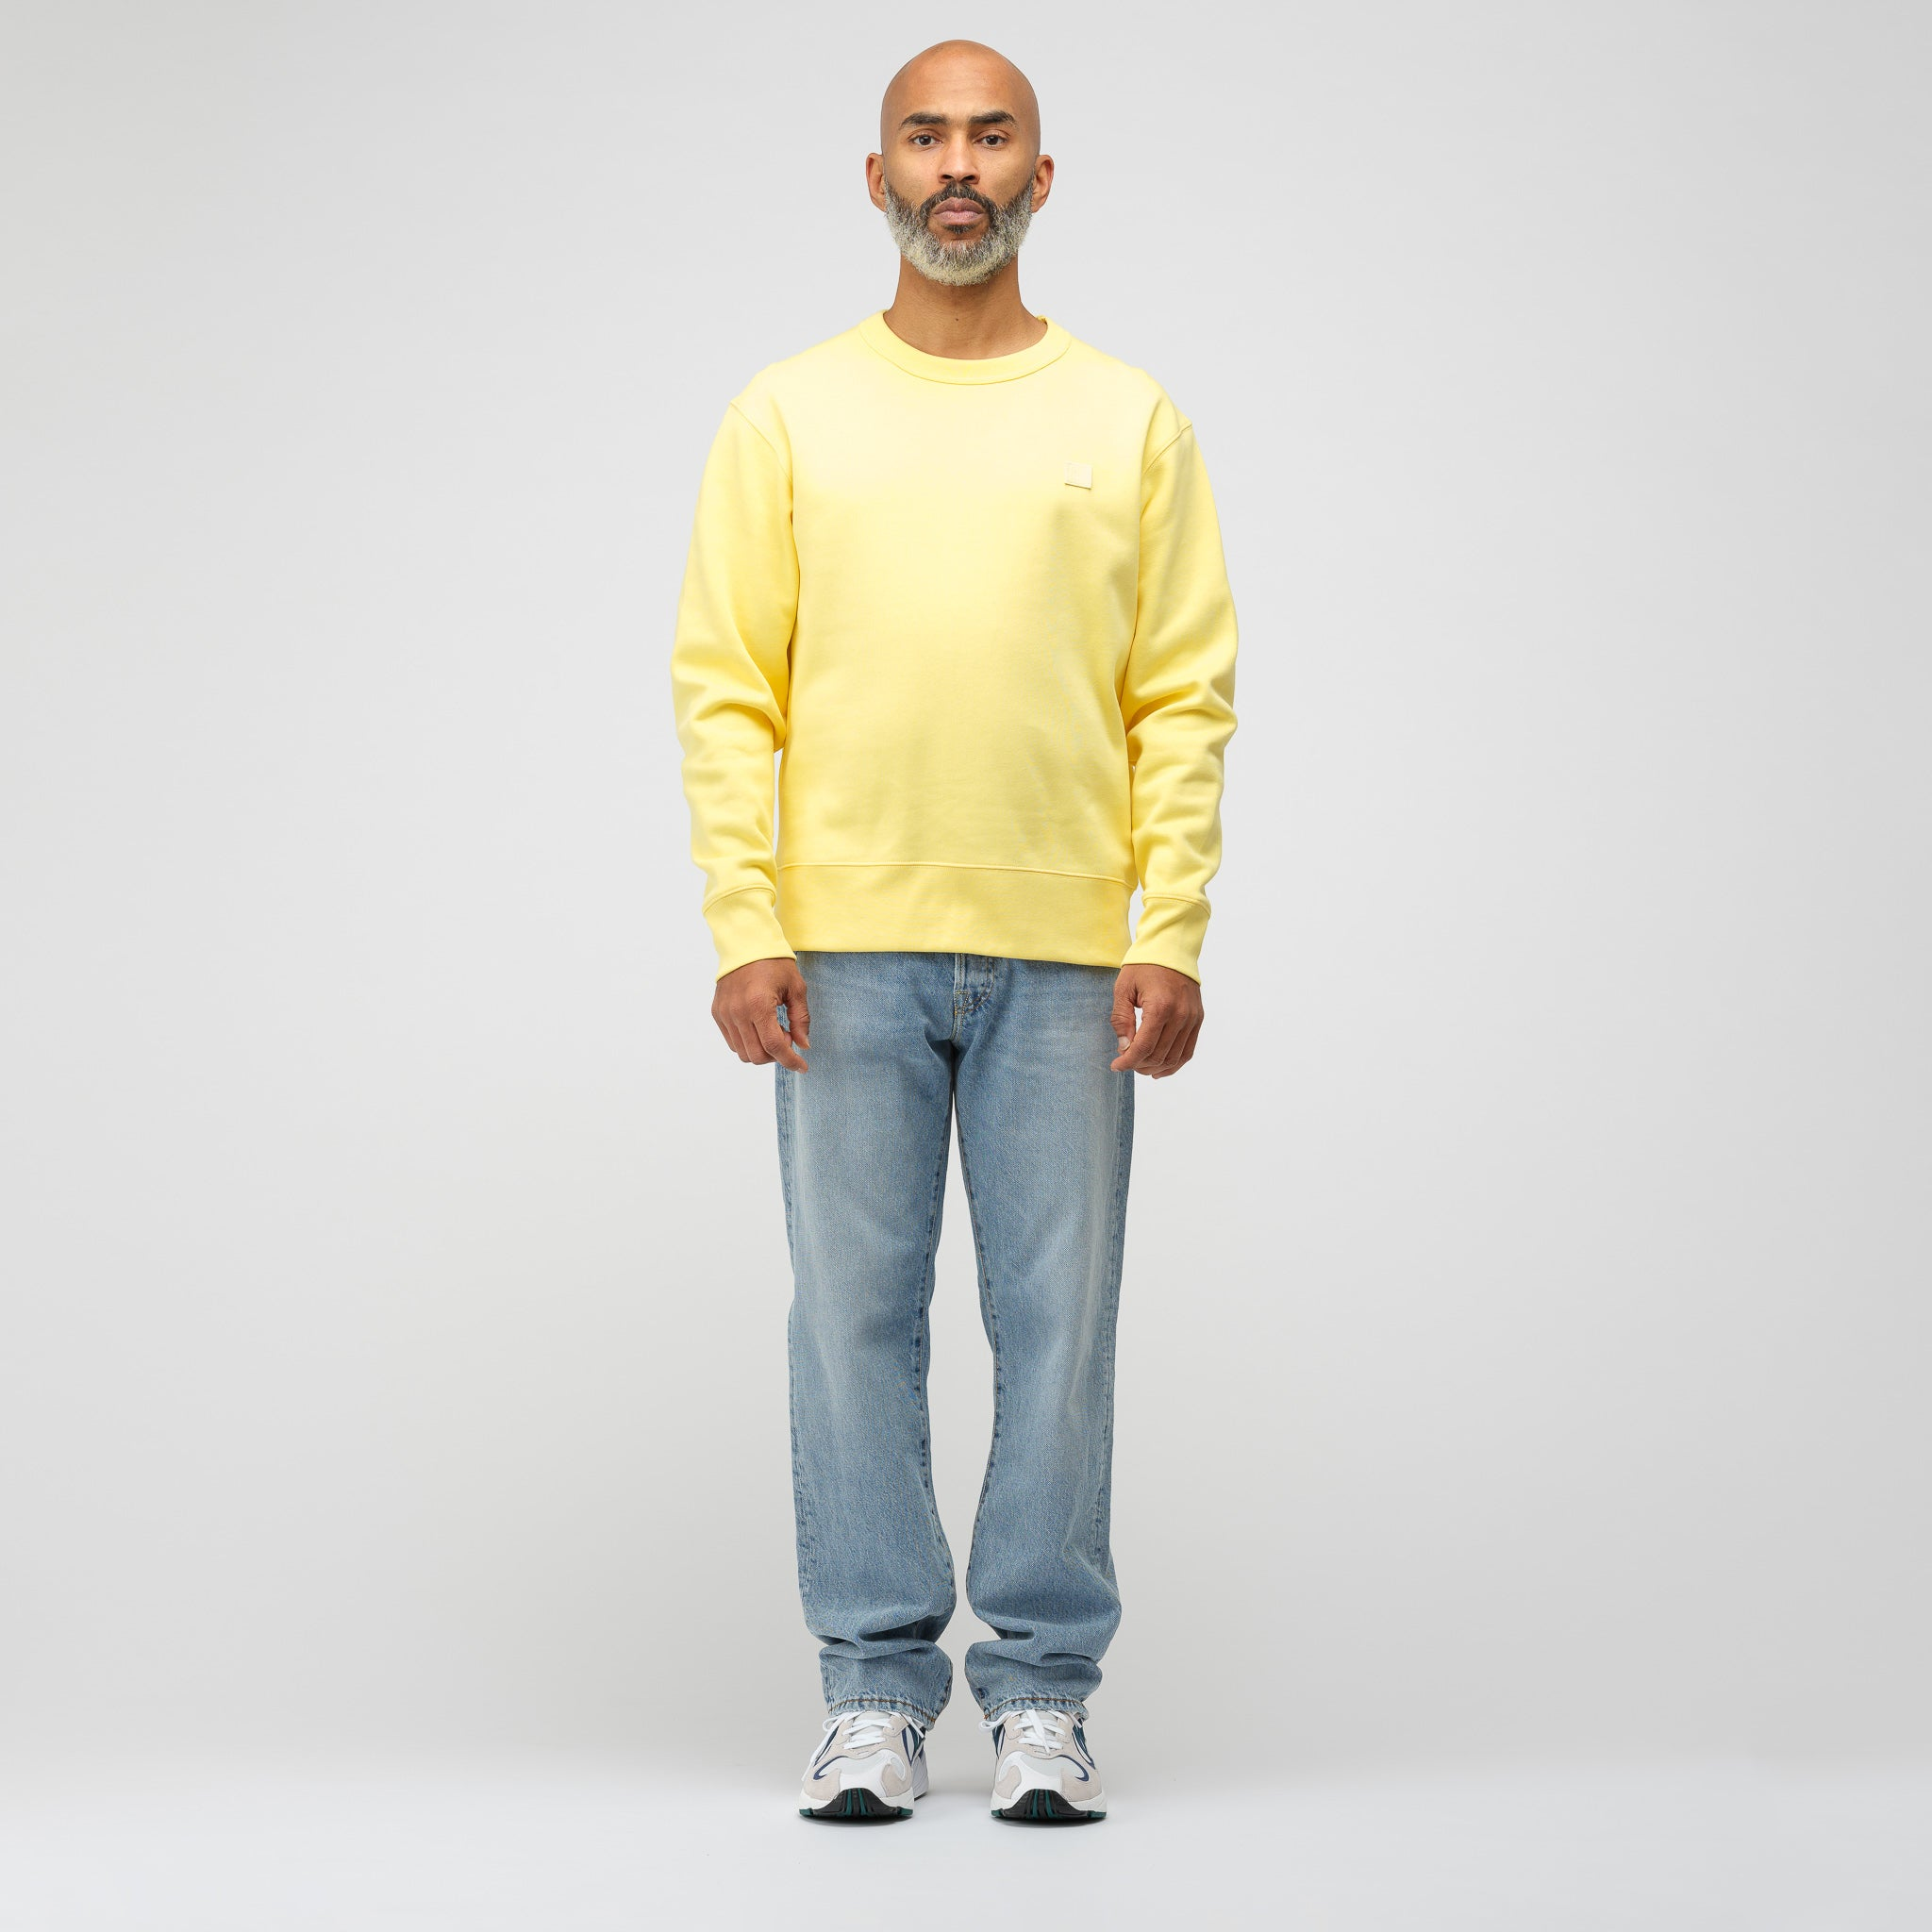 Fairview Face Sweatshirt in Pale Yellow